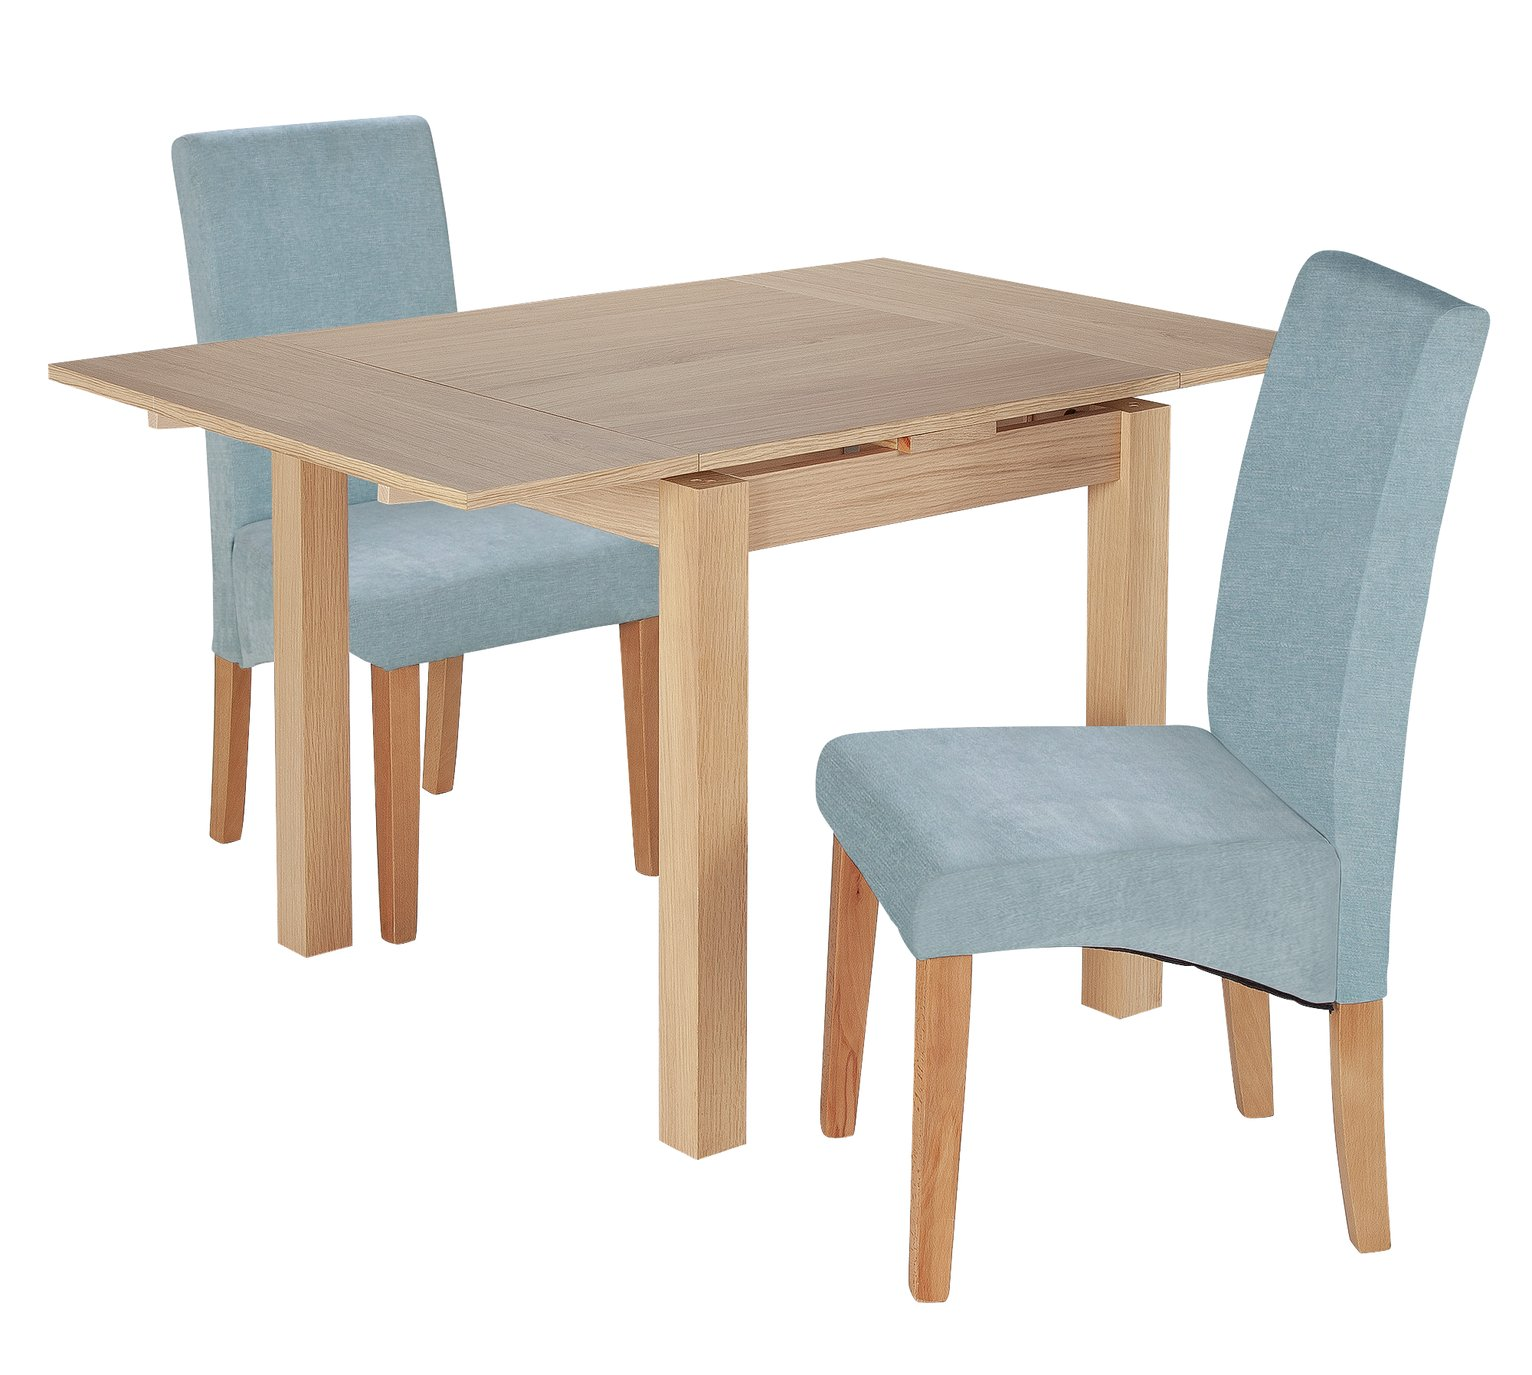 Argos Home Clifton Extendable Table & 2 Chairs - Duck Egg